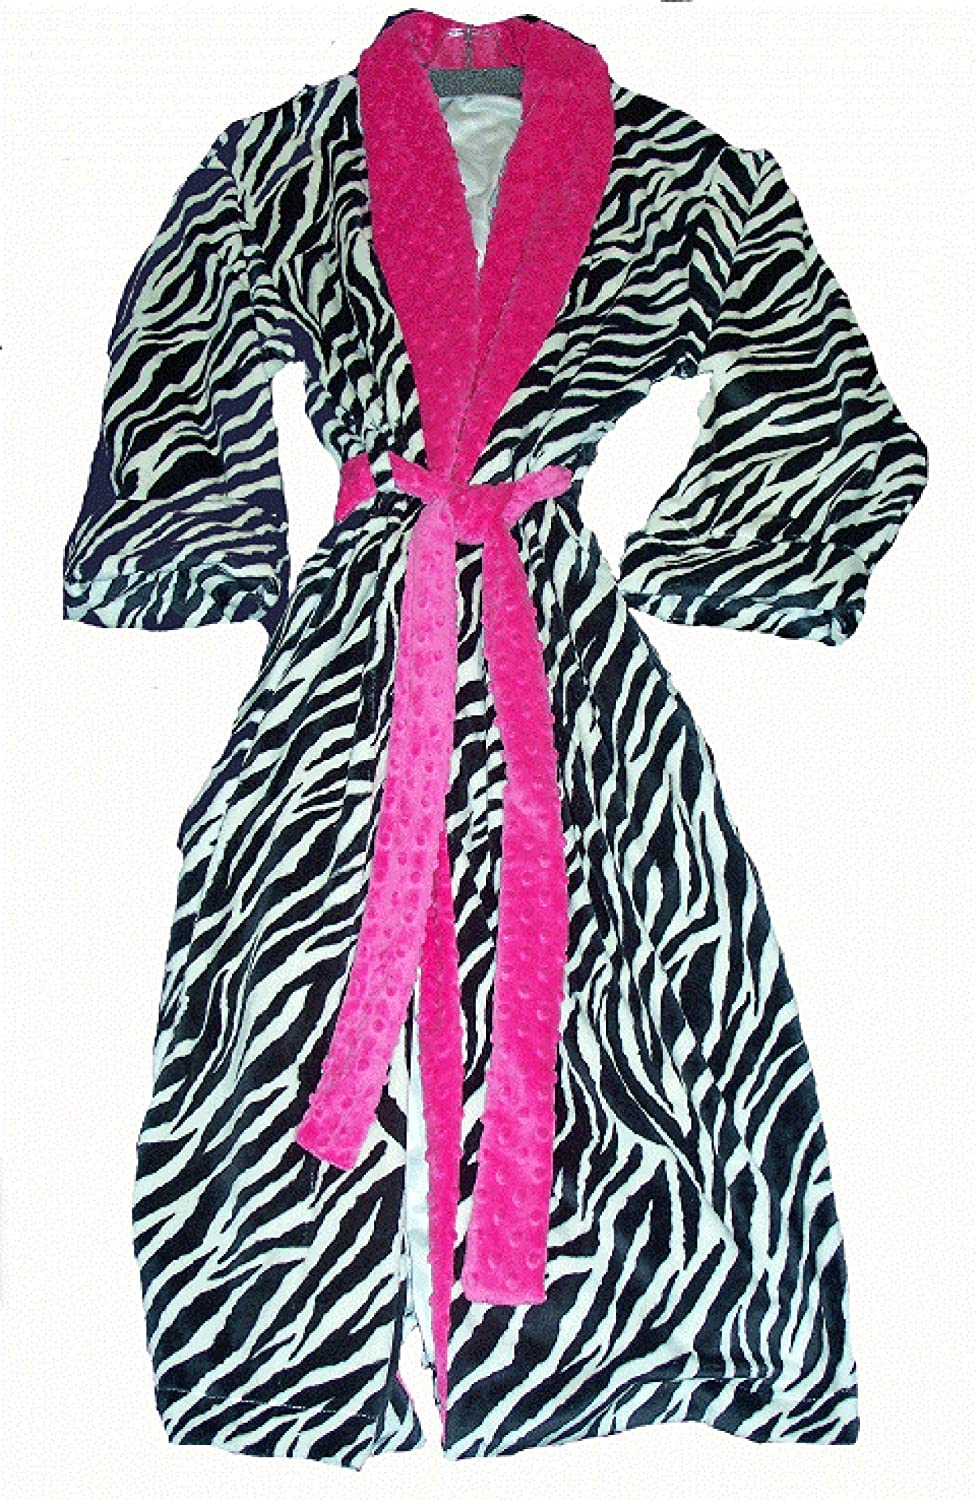 Super Soft Minky Ladies Zebra Robe with Fuchsia Trim by Love and Lace